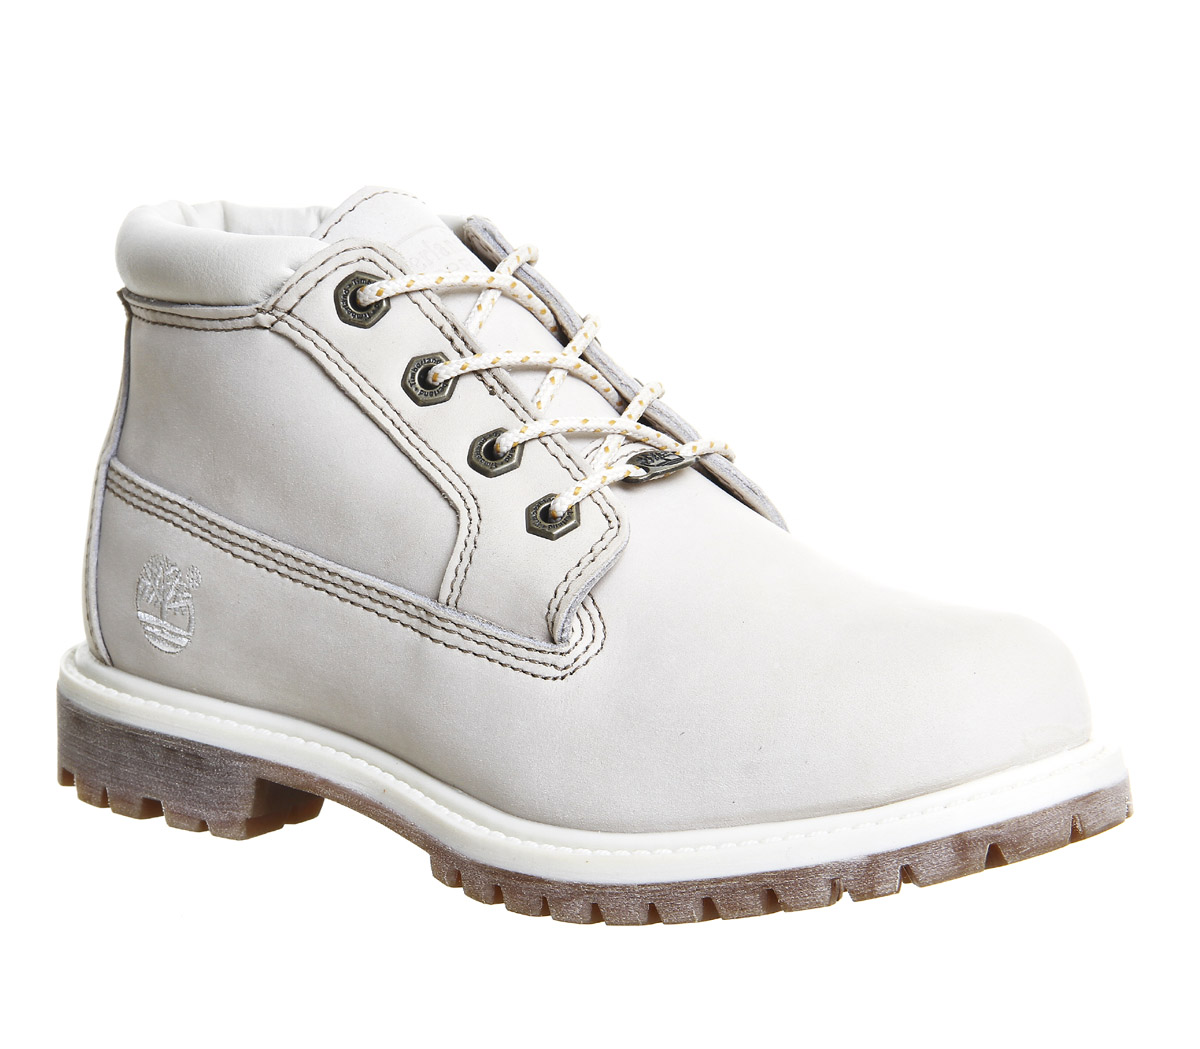 timberland women's waterproof nellie chukka double boots